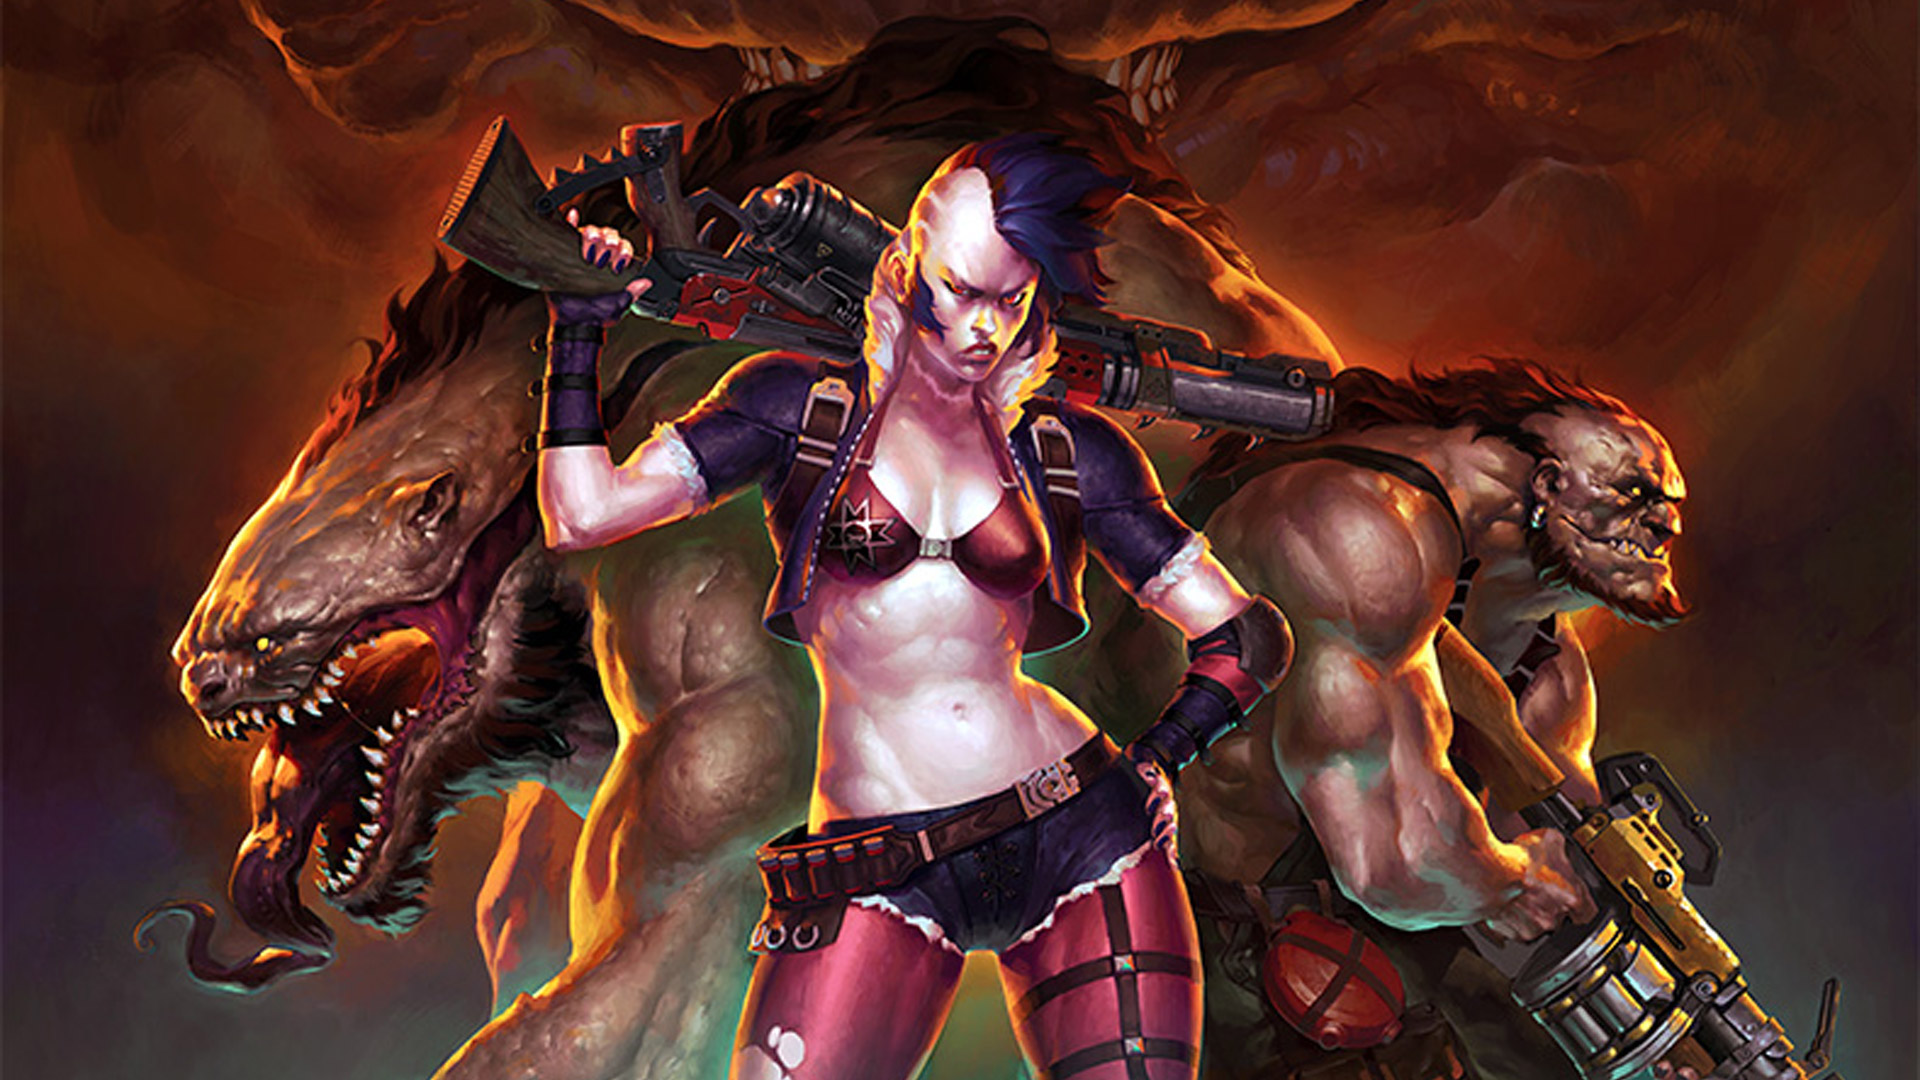 Spacelords Wallpaper in 1920x1080